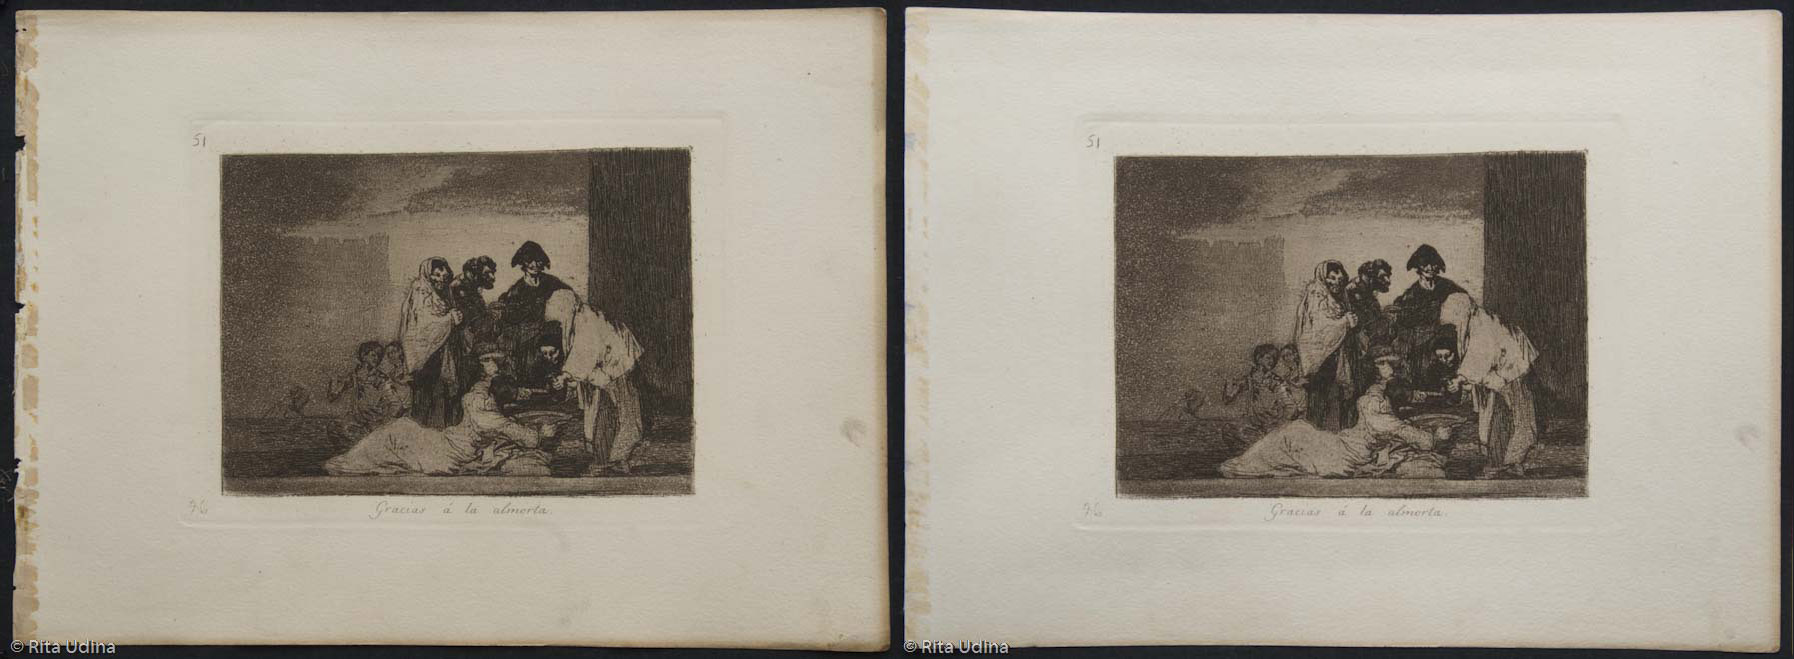 Print #51 before and after conservation. CLICK!